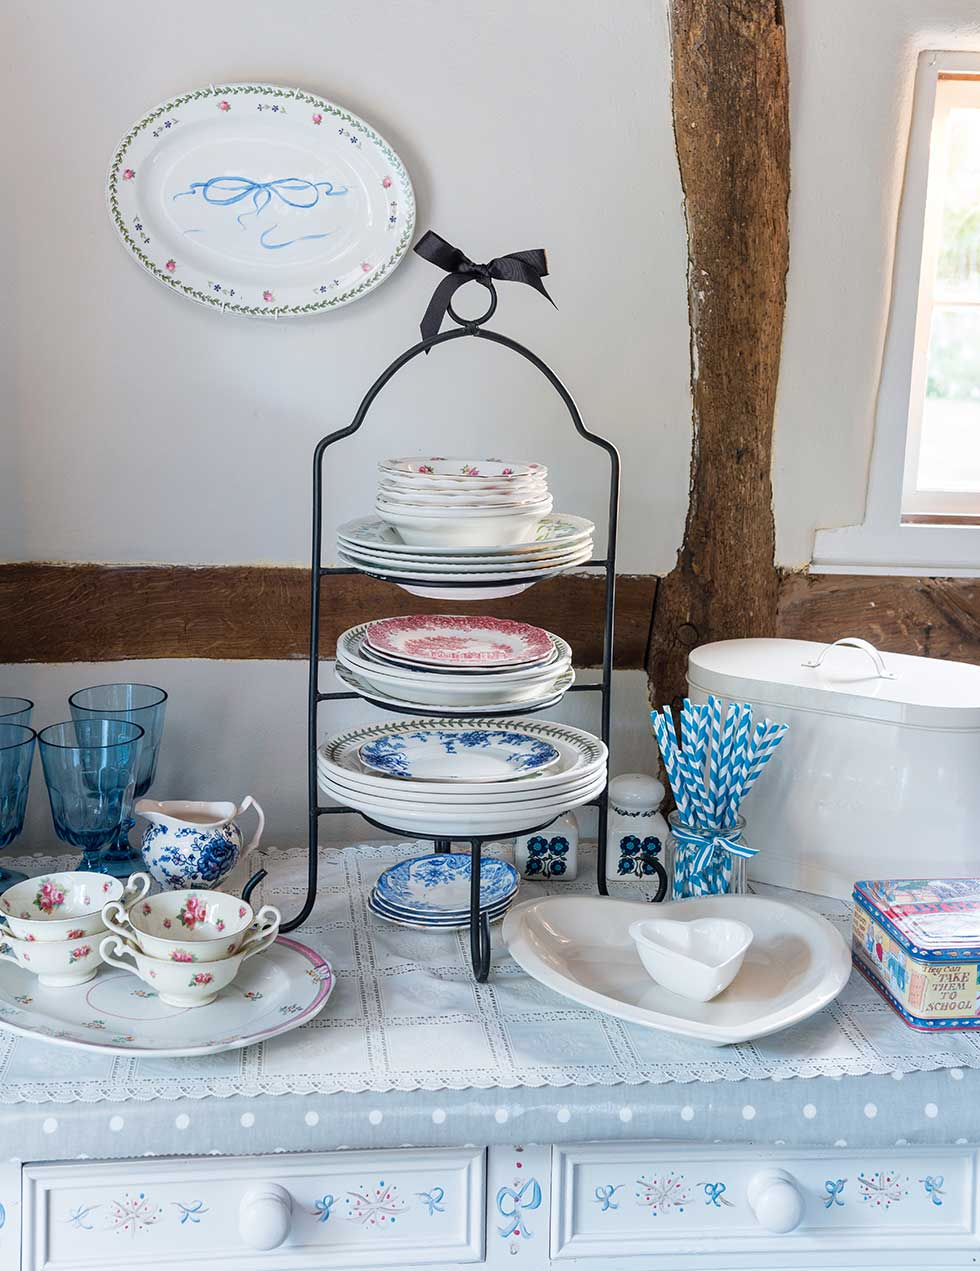 lewis-cottage-dining-plates